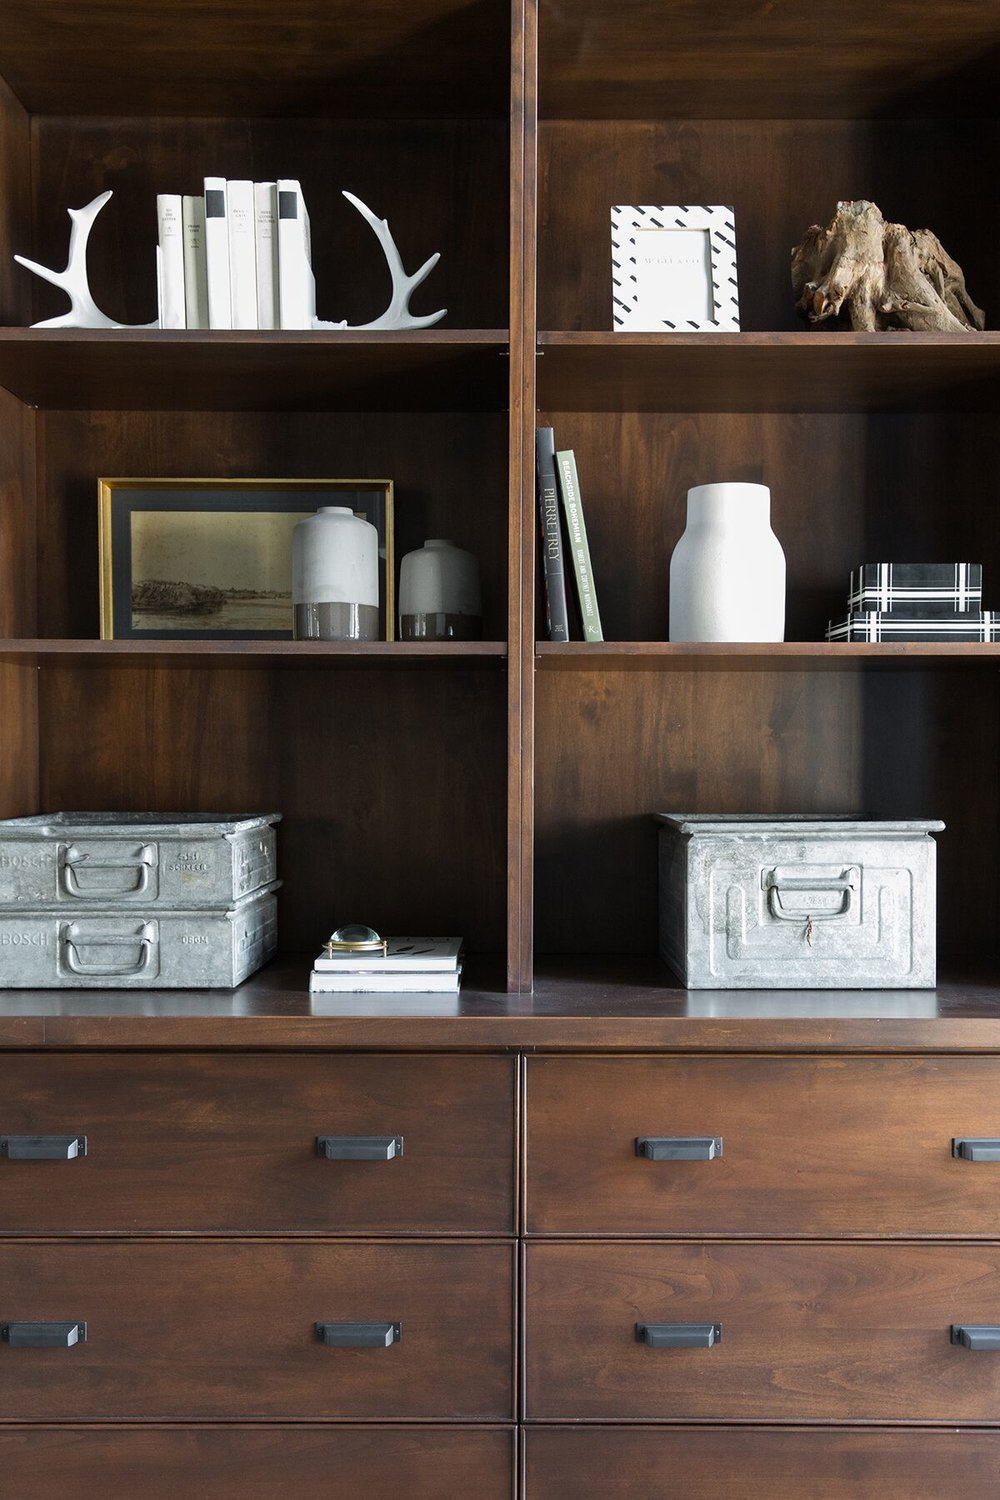 Incorporating Meaningful Accents Through Styling